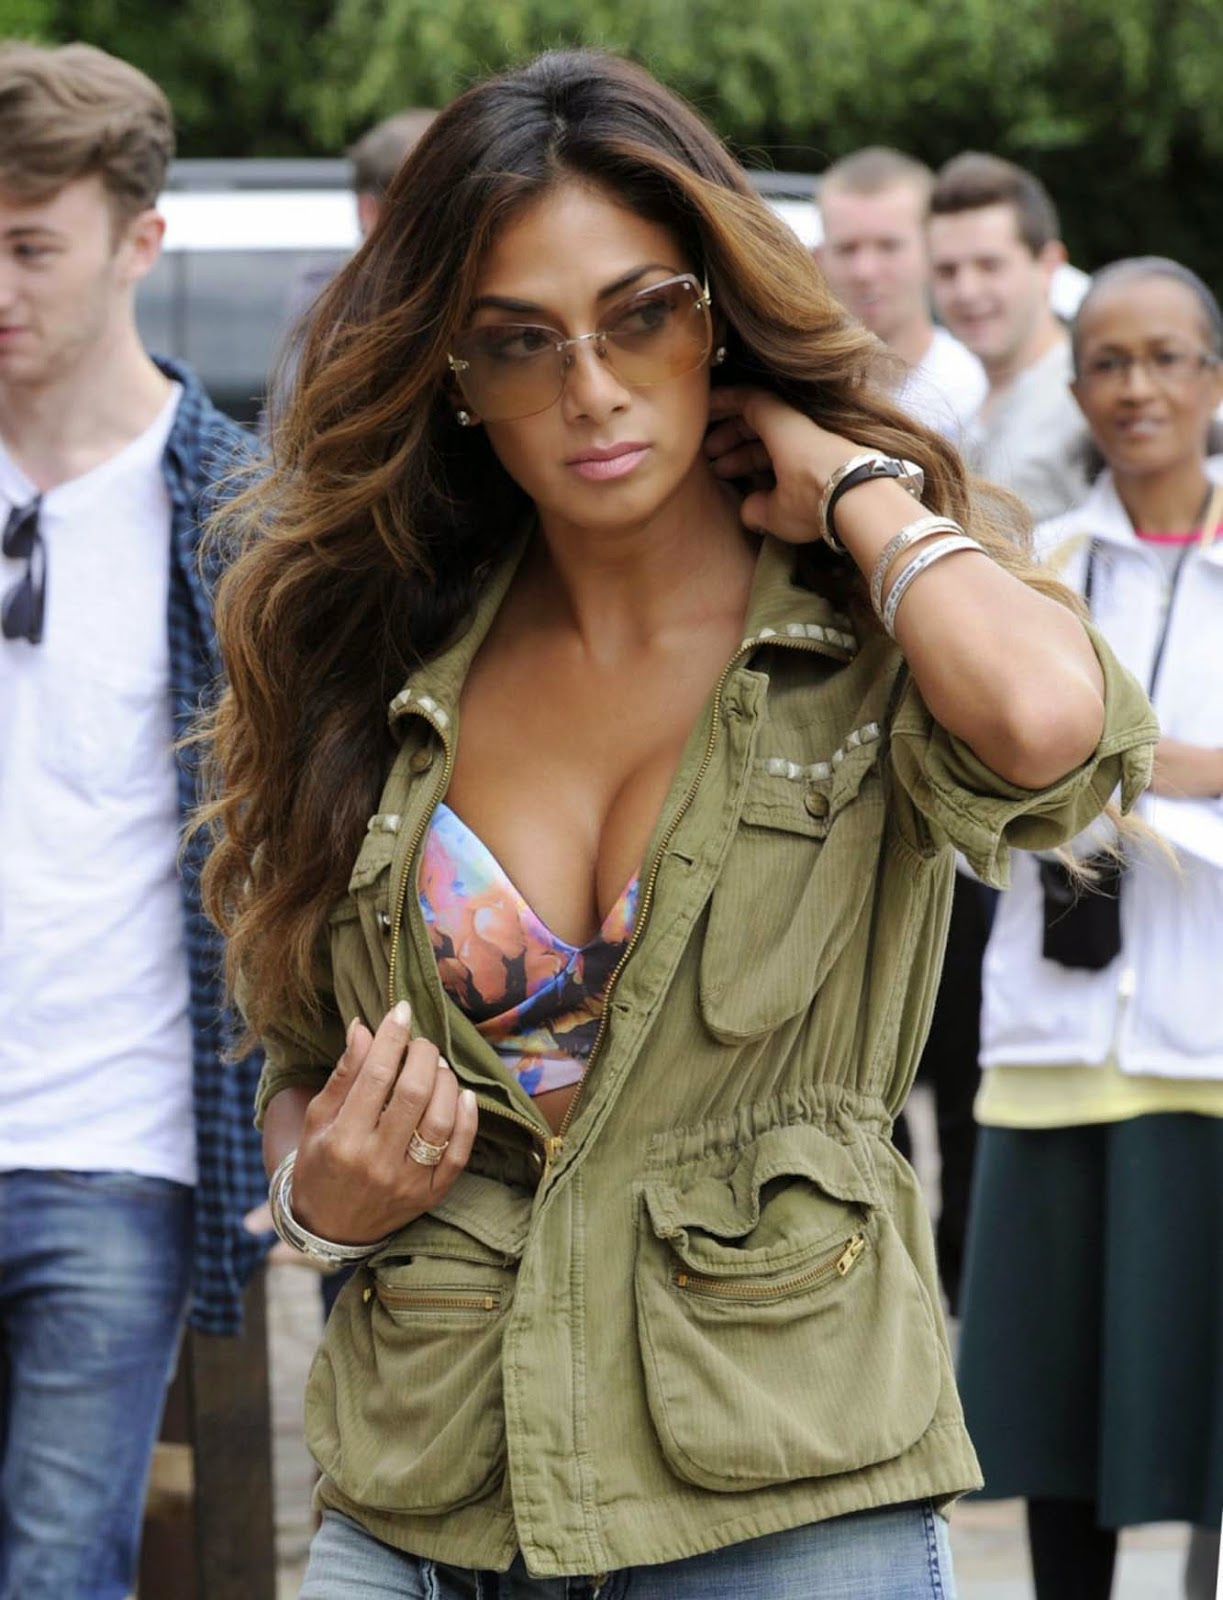 Nicole Scherzinger Latest Photoshoot 2014 Wallpapers Hot sexy model stills